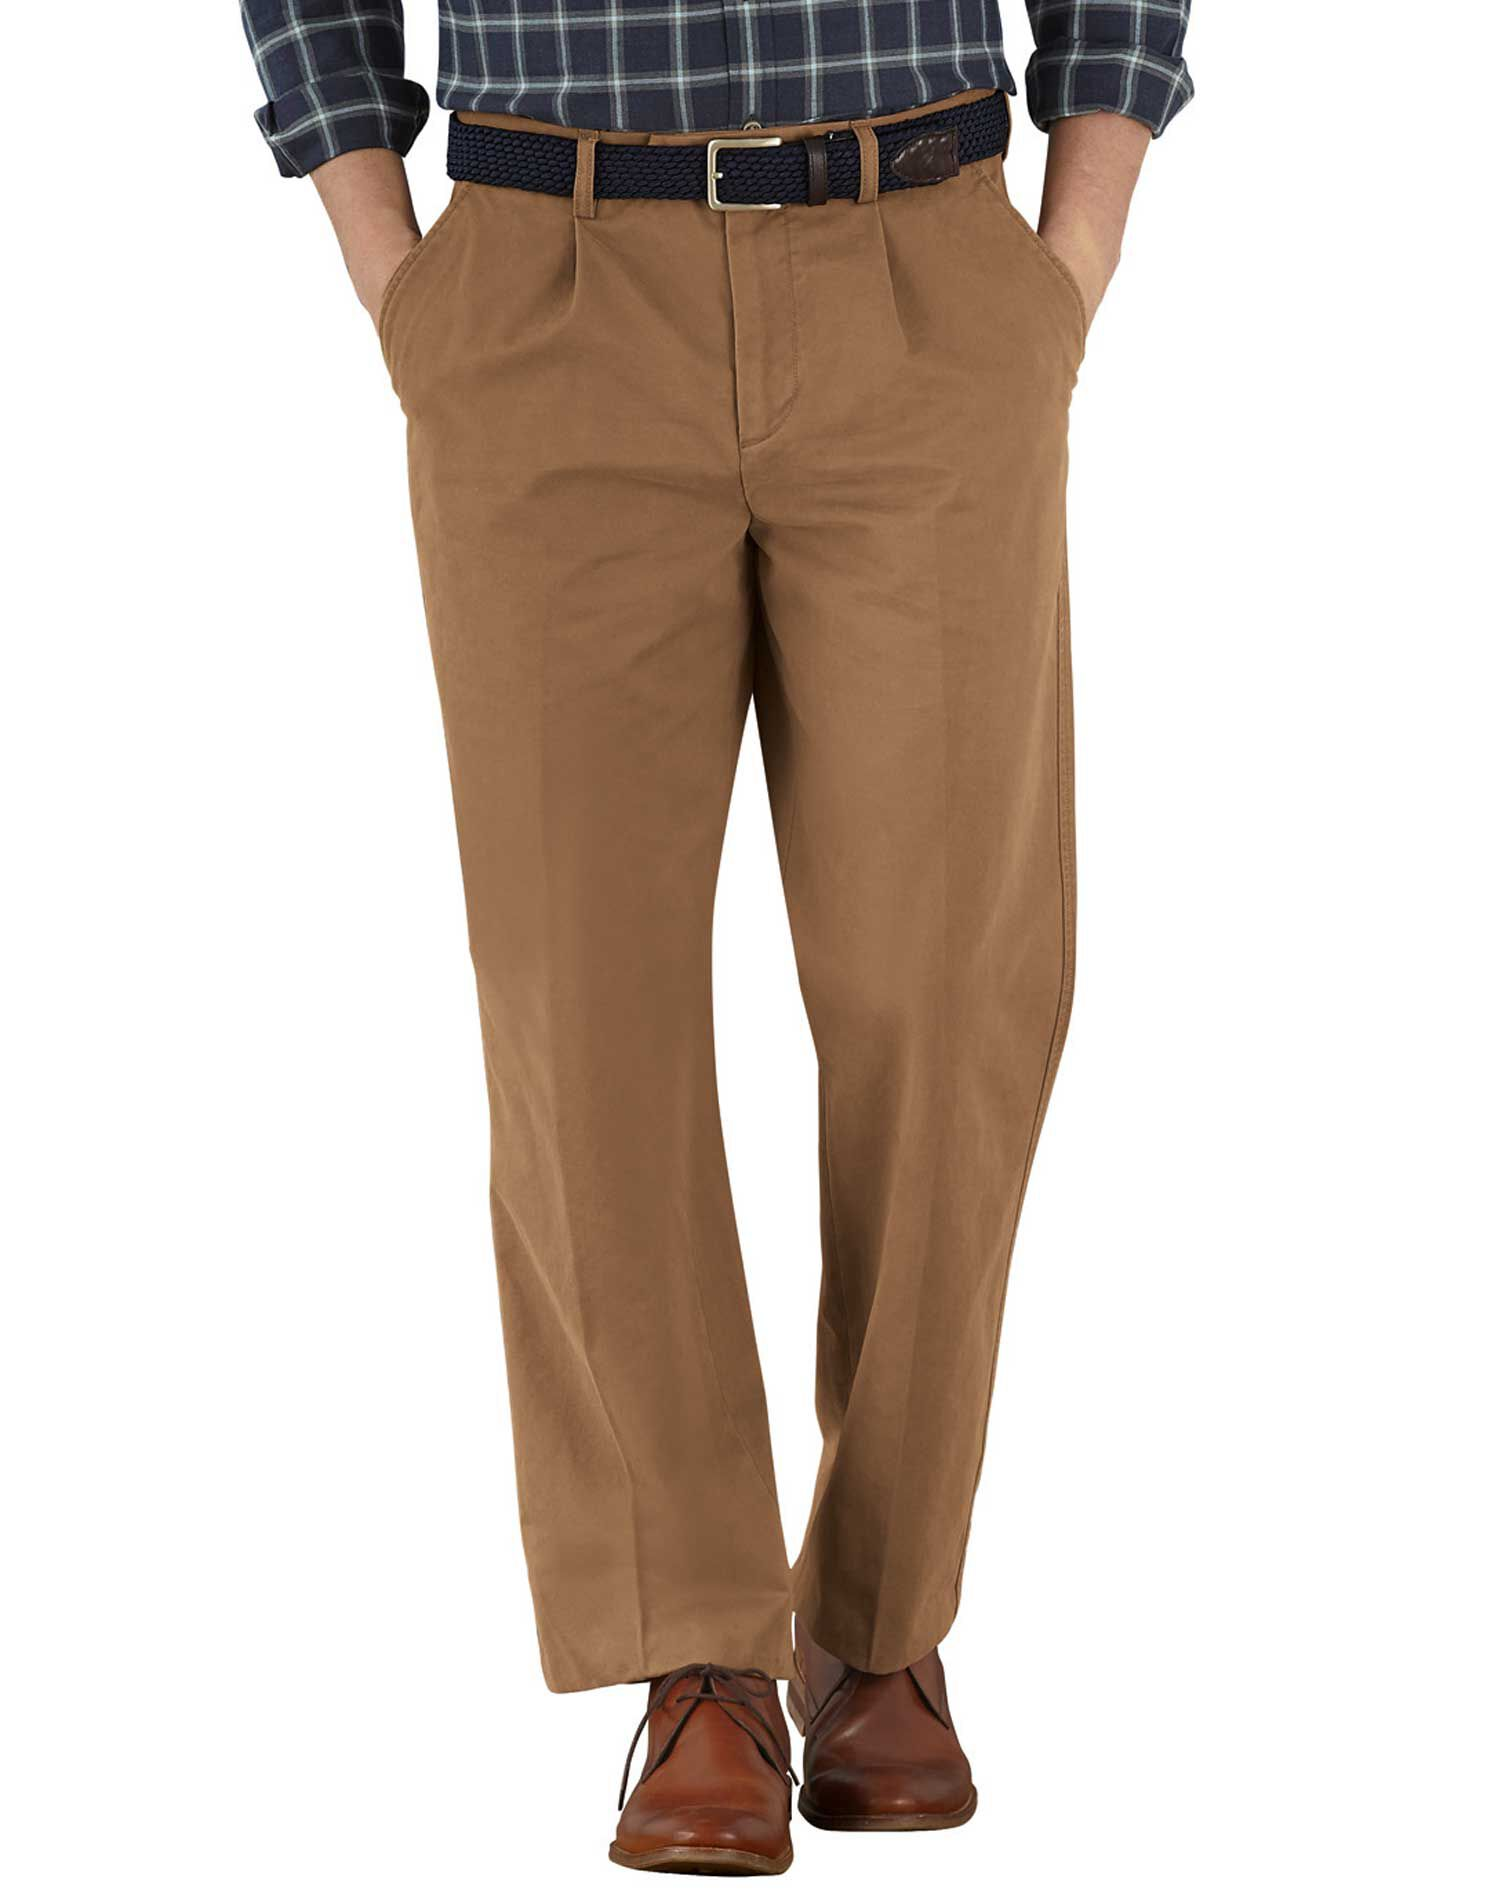 Camel Classic Fit Single Pleat Cotton Chino Trousers Size W42 L29 by Charles Tyrwhitt